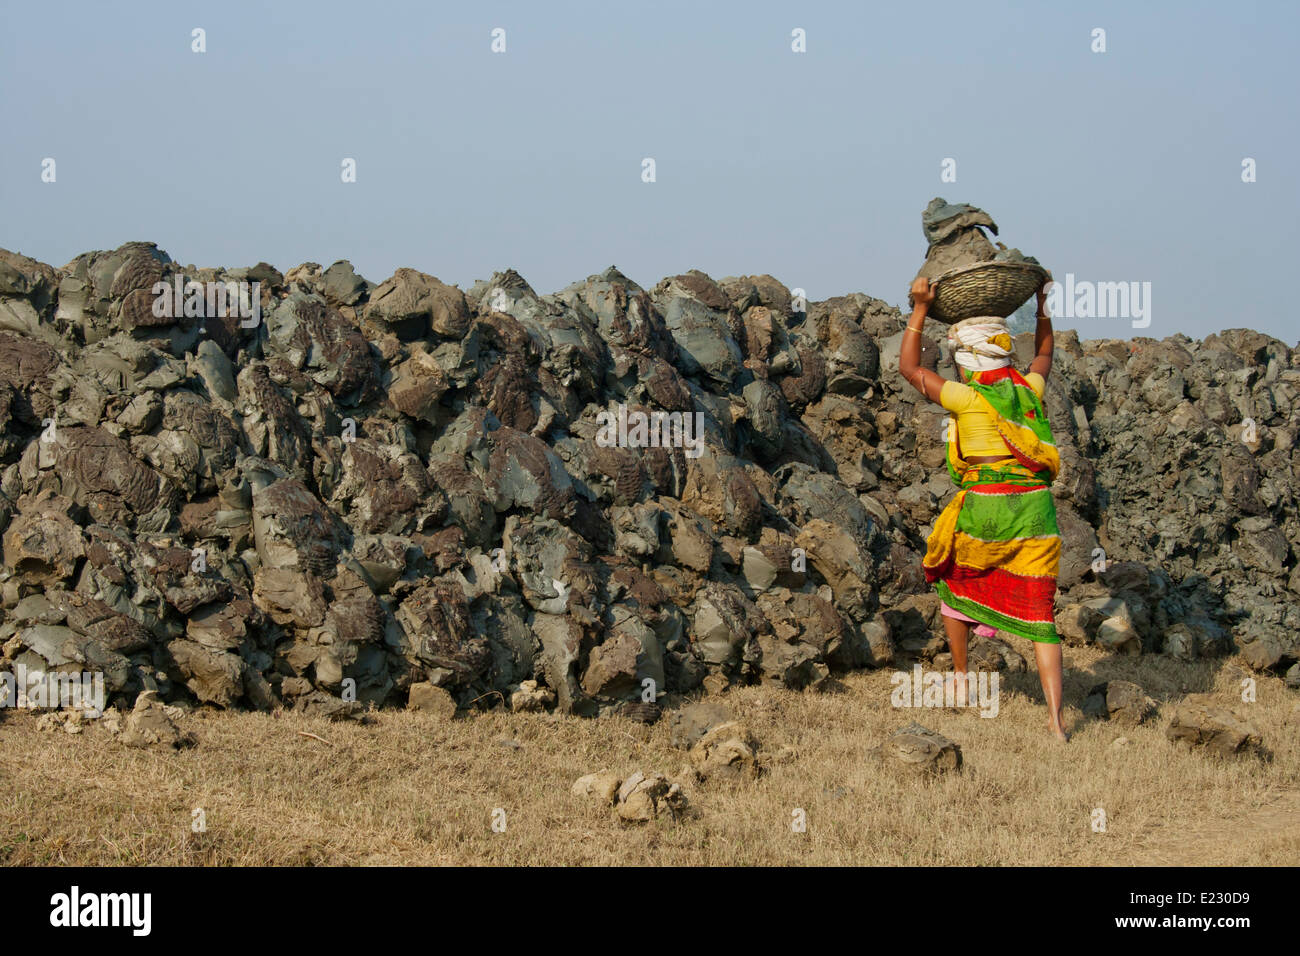 Women labourers carrying heavy basket of earth on head West bengle, India - Stock Image